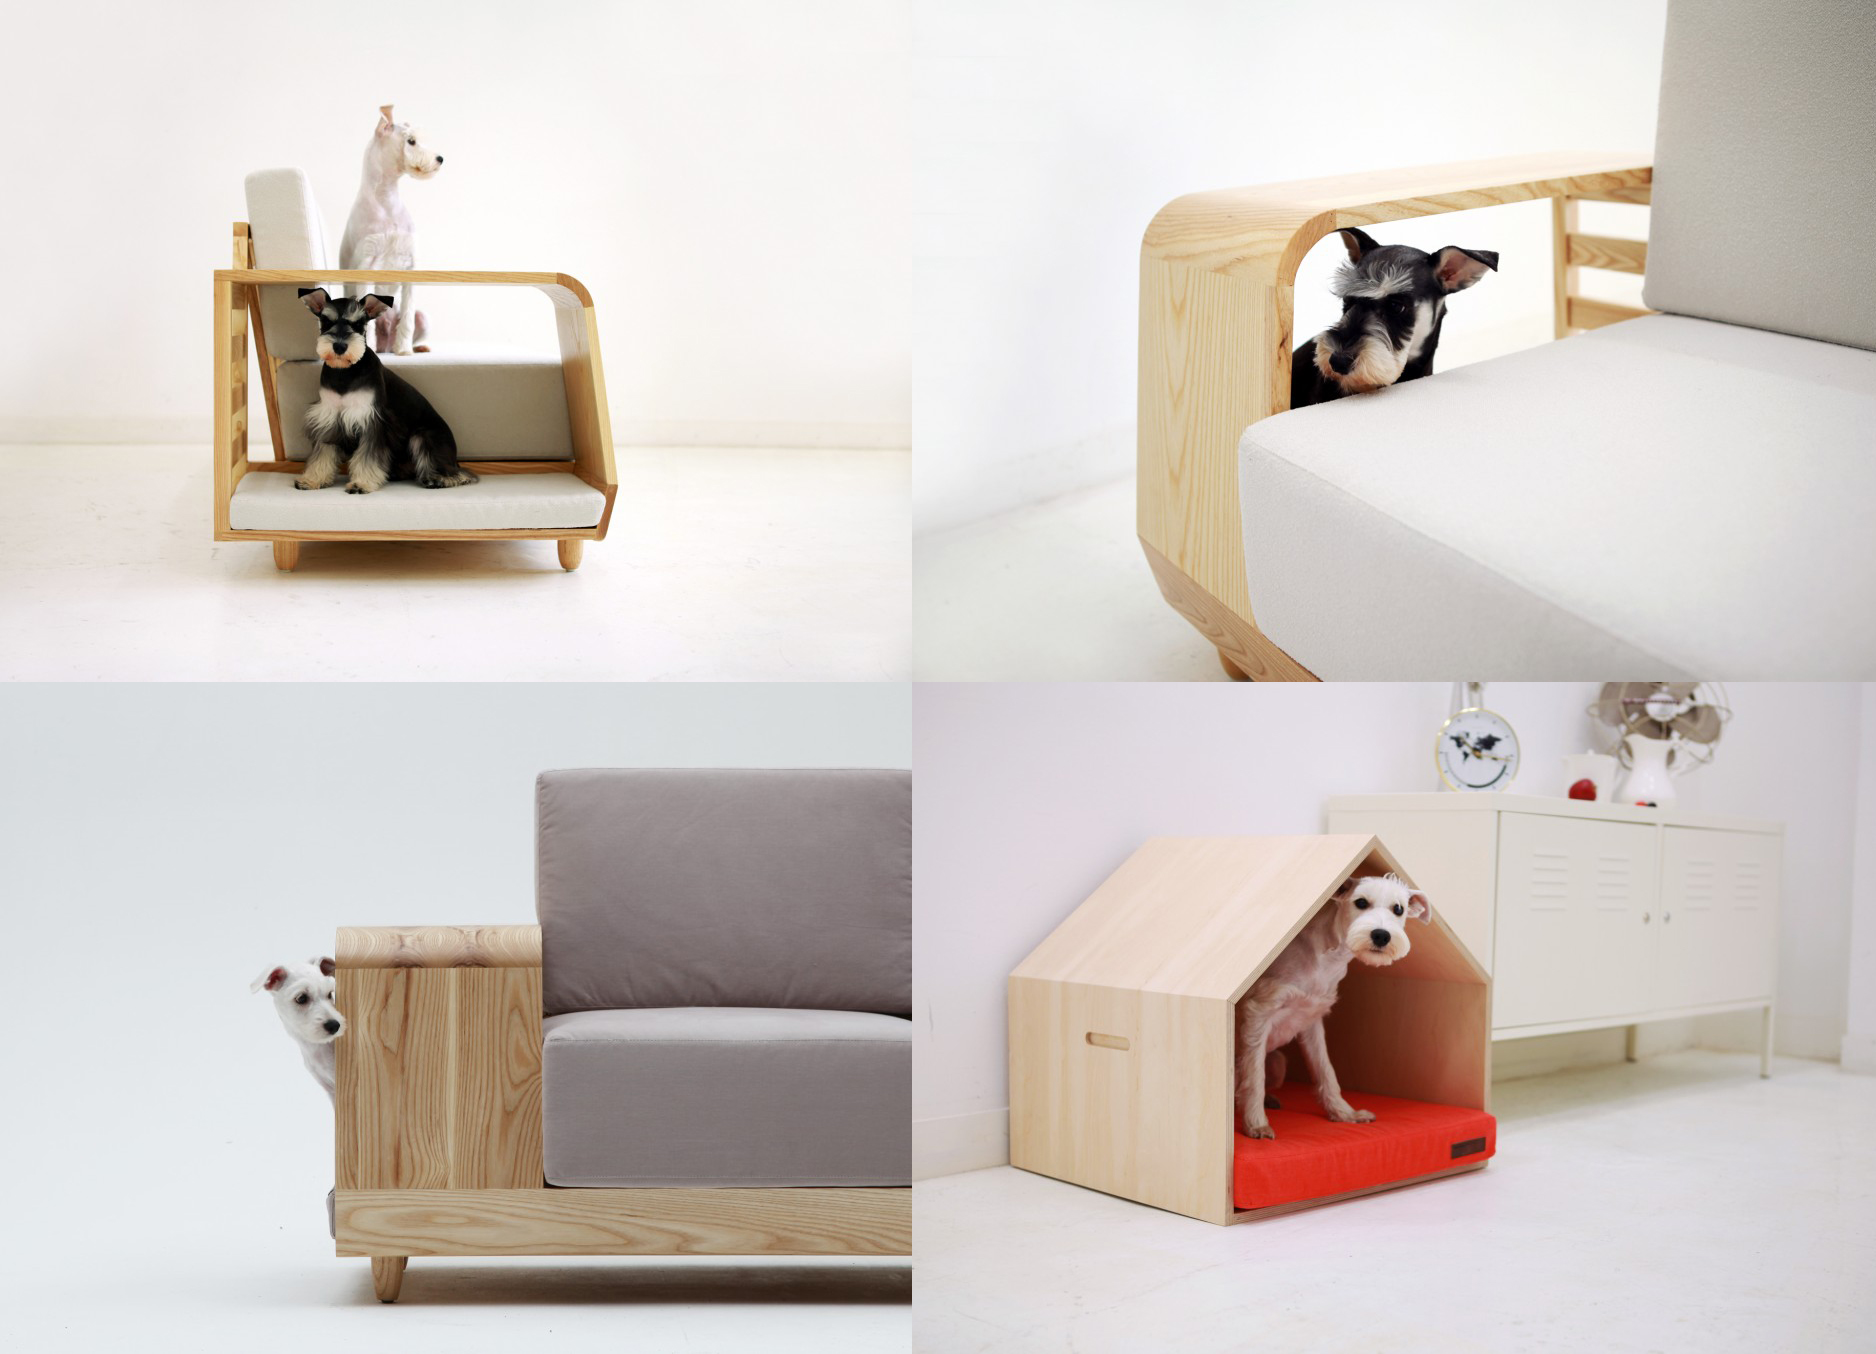 Modern design ideas for our furry friends studio mm Dog house sofa